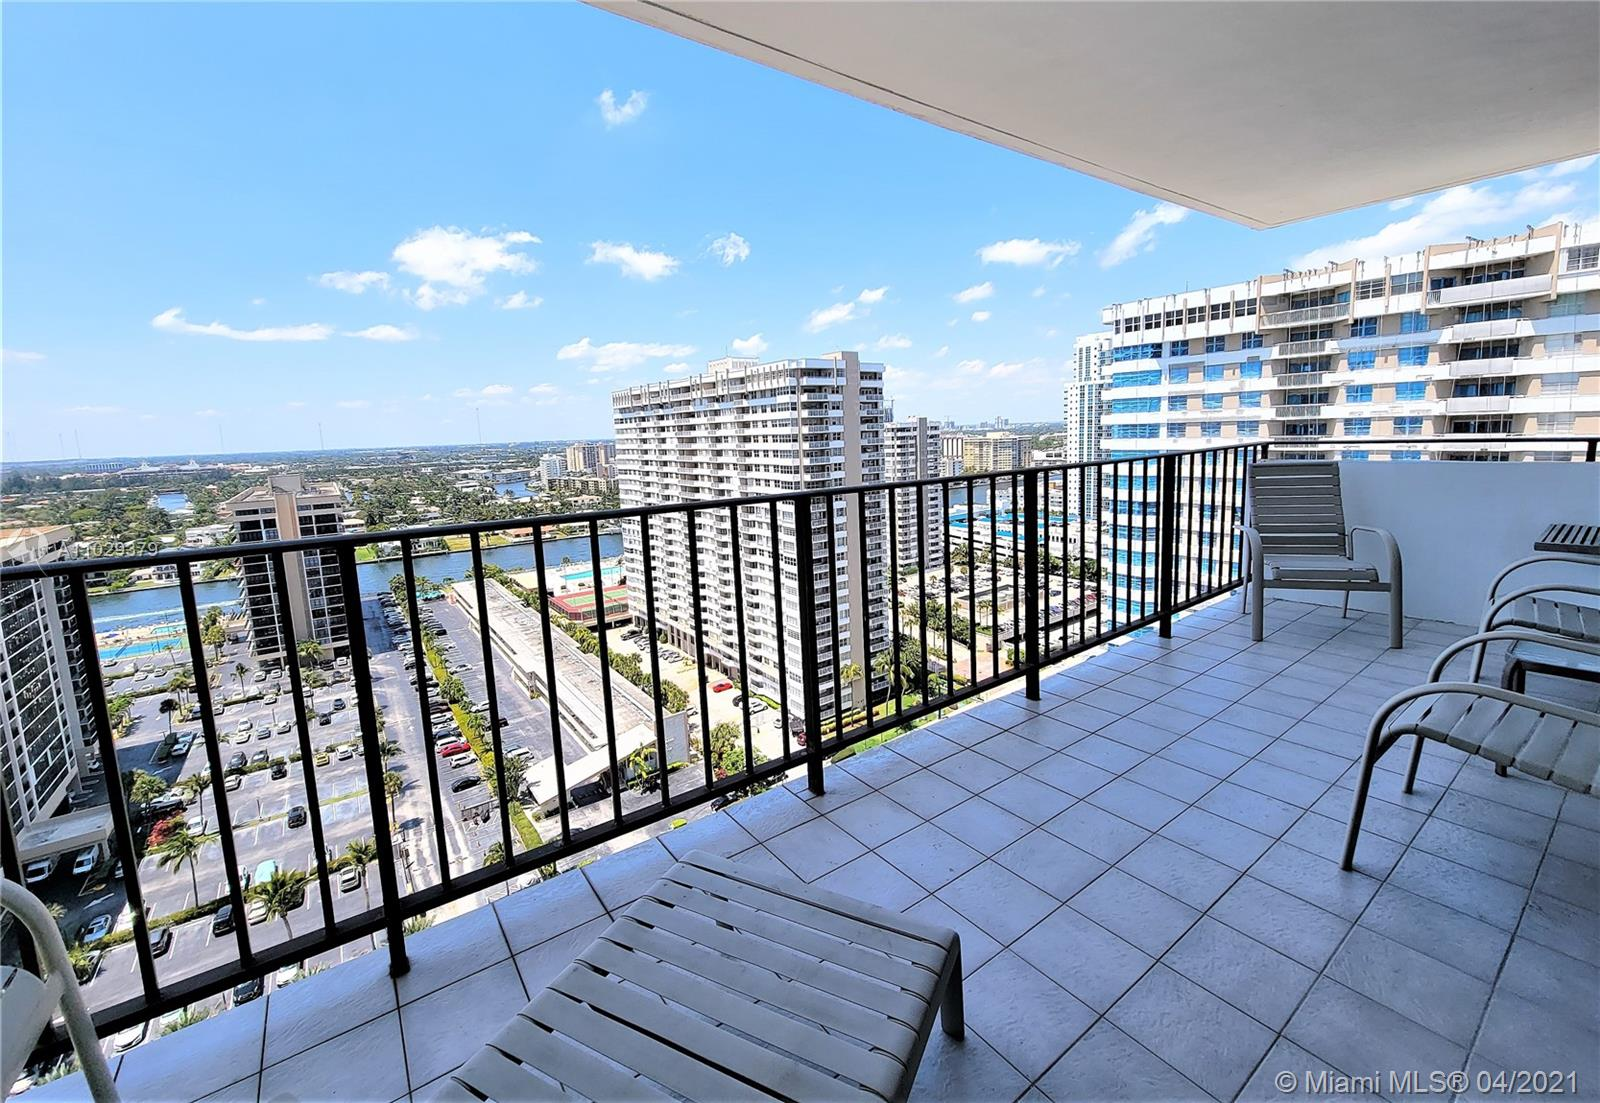 Photo of 2030 Ocean Dr #2026, Hallandale Beach, Florida, 33009 - Large Balconies, Railings Will Be Replaced With Glass Railing